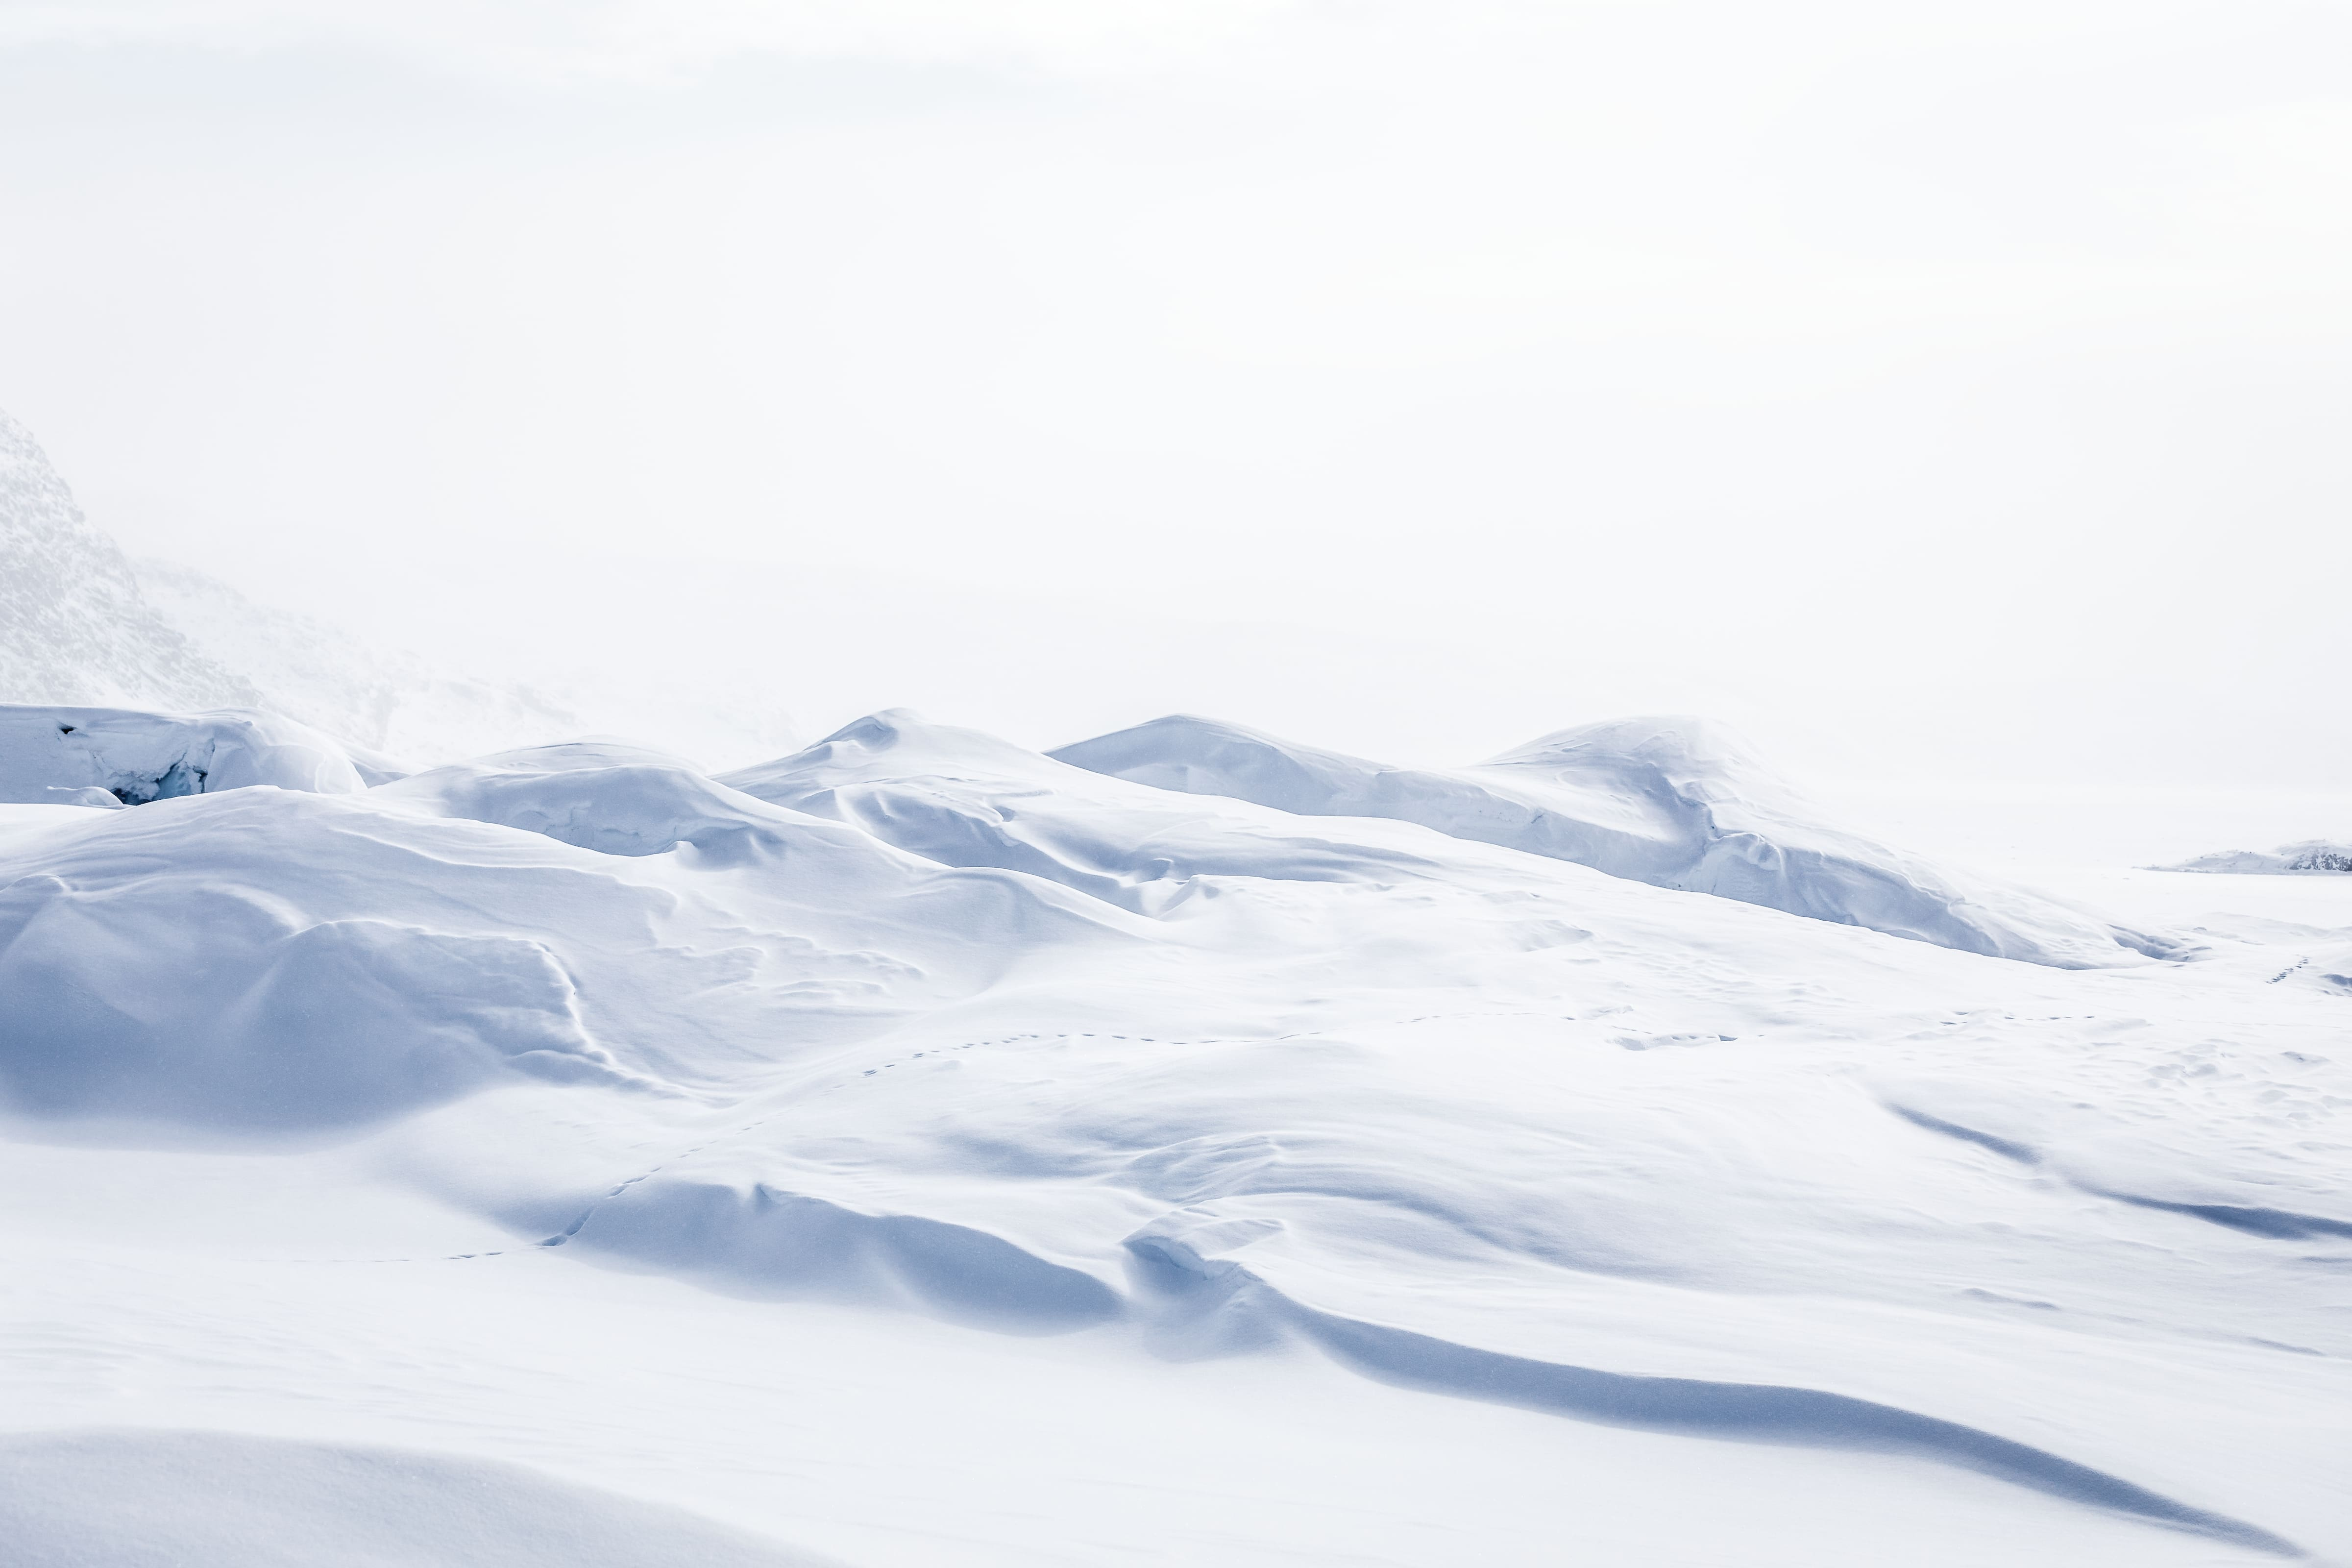 Snowy Whiteout. By Samuel Letecheur